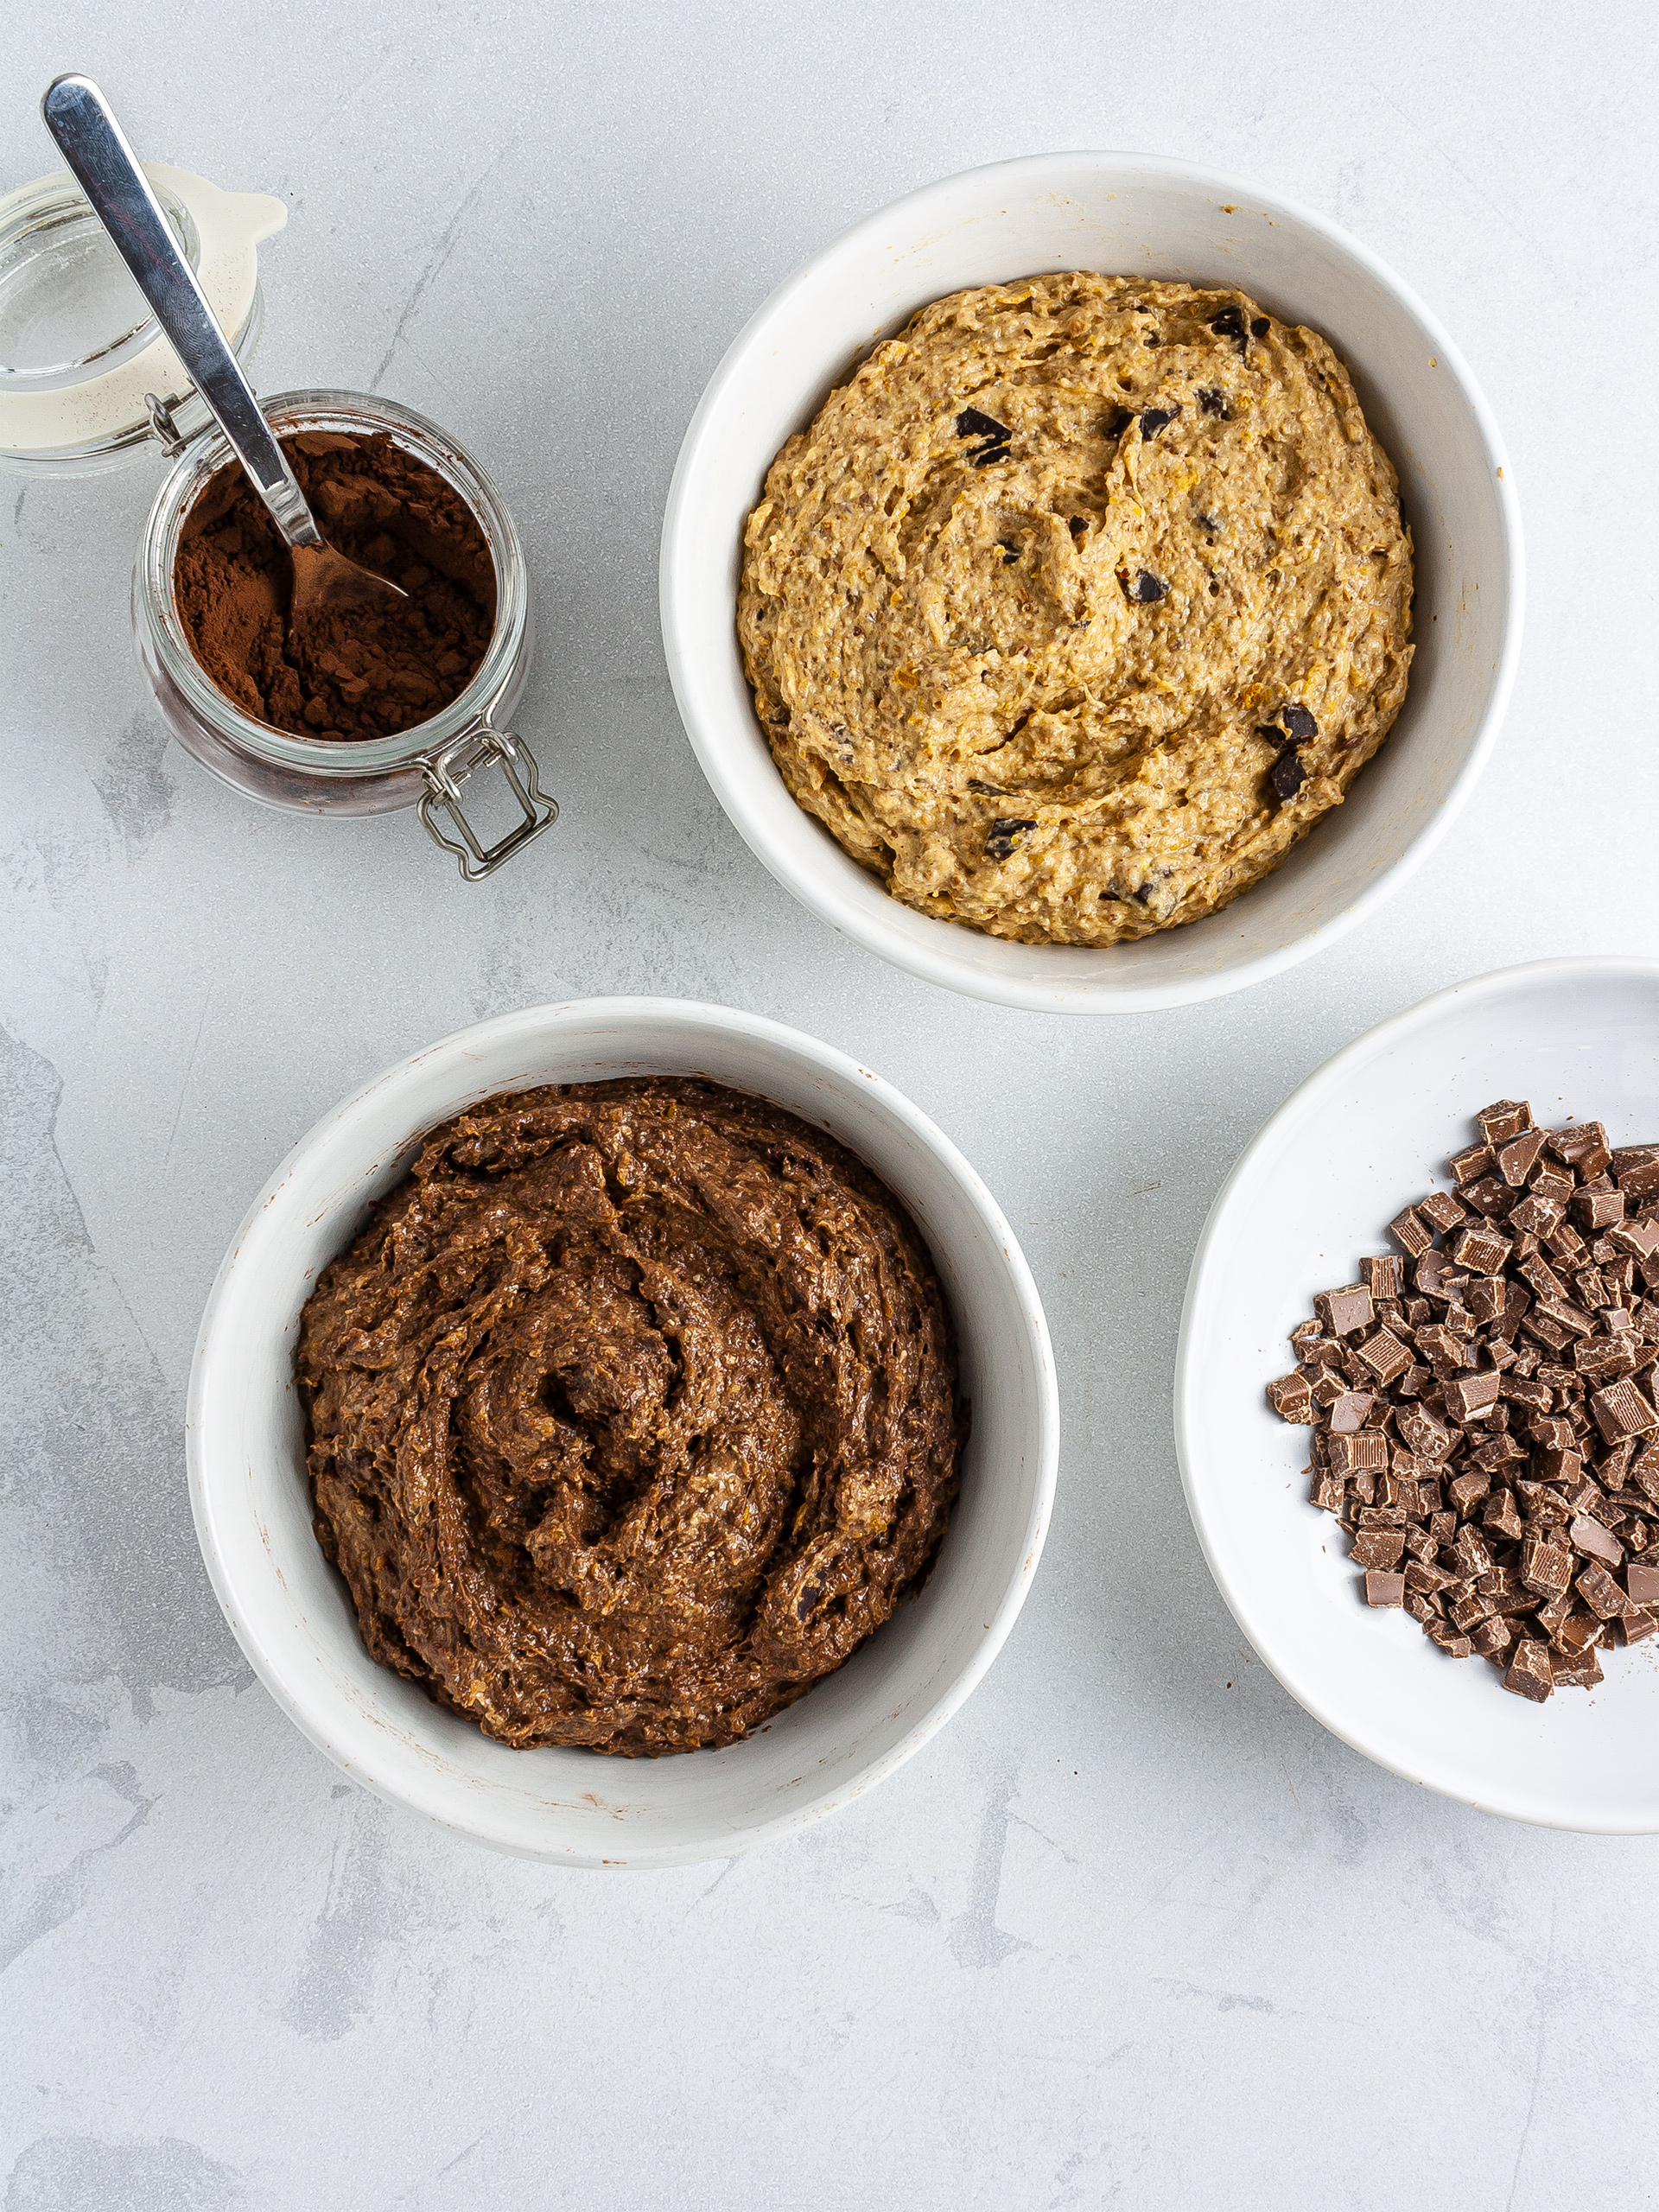 Pumpkin bread batter with cacao and chocolate chips